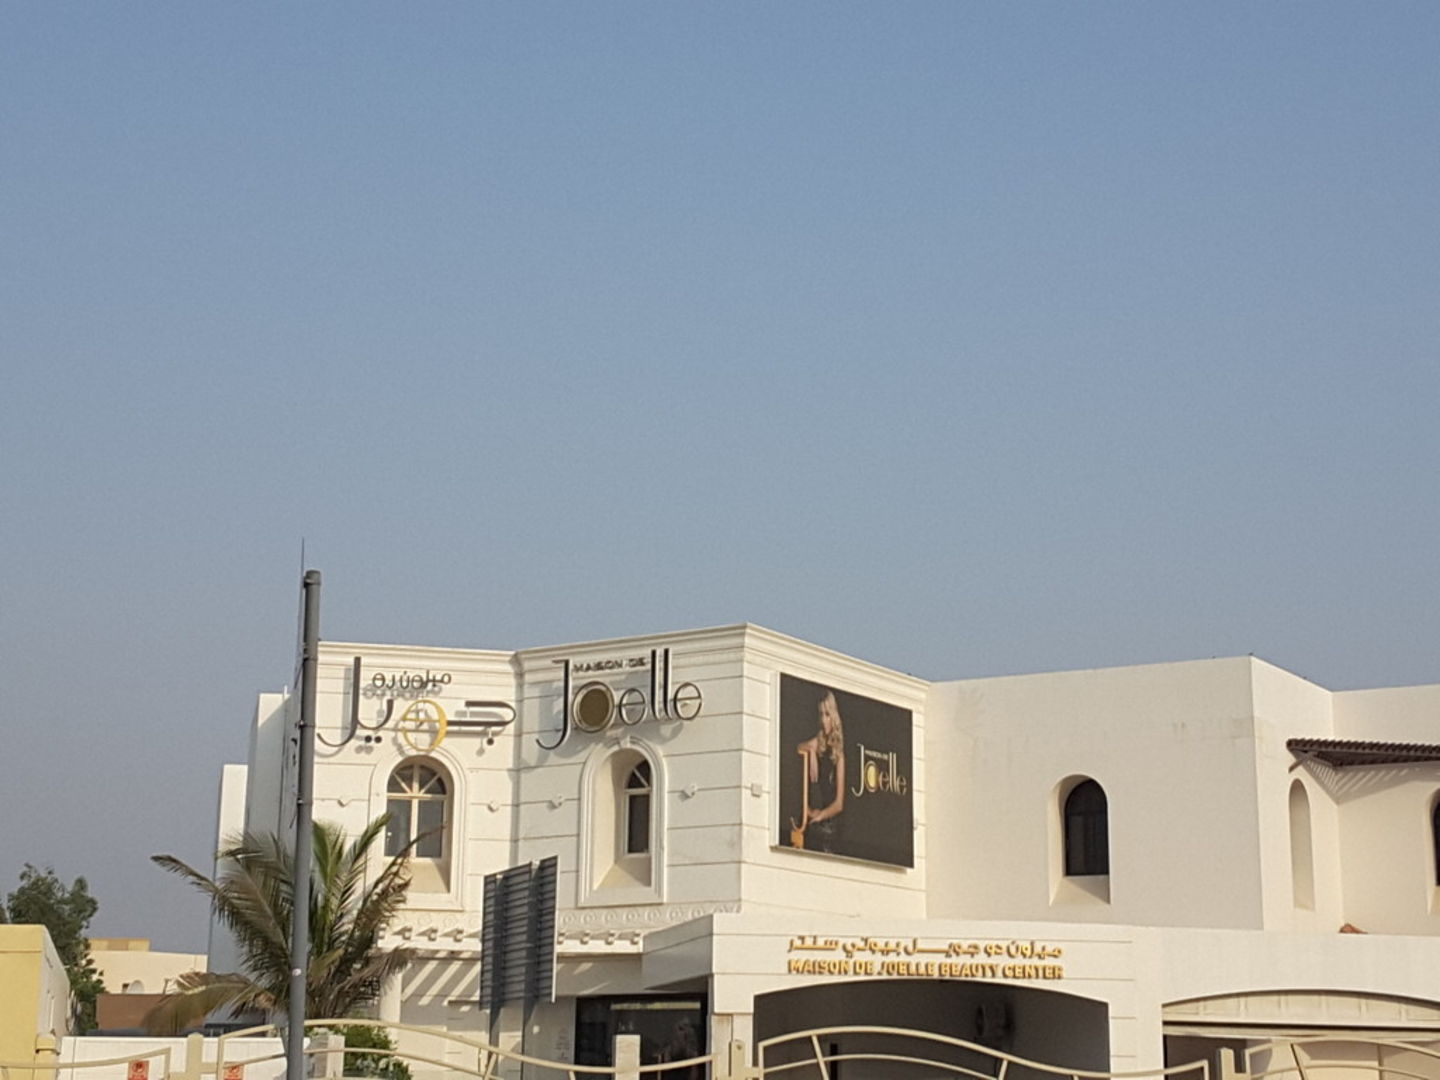 HiDubai-business-maison-de-joelle-beauty-center-beauty-wellness-health-beauty-salons-umm-suqeim-2-dubai-2